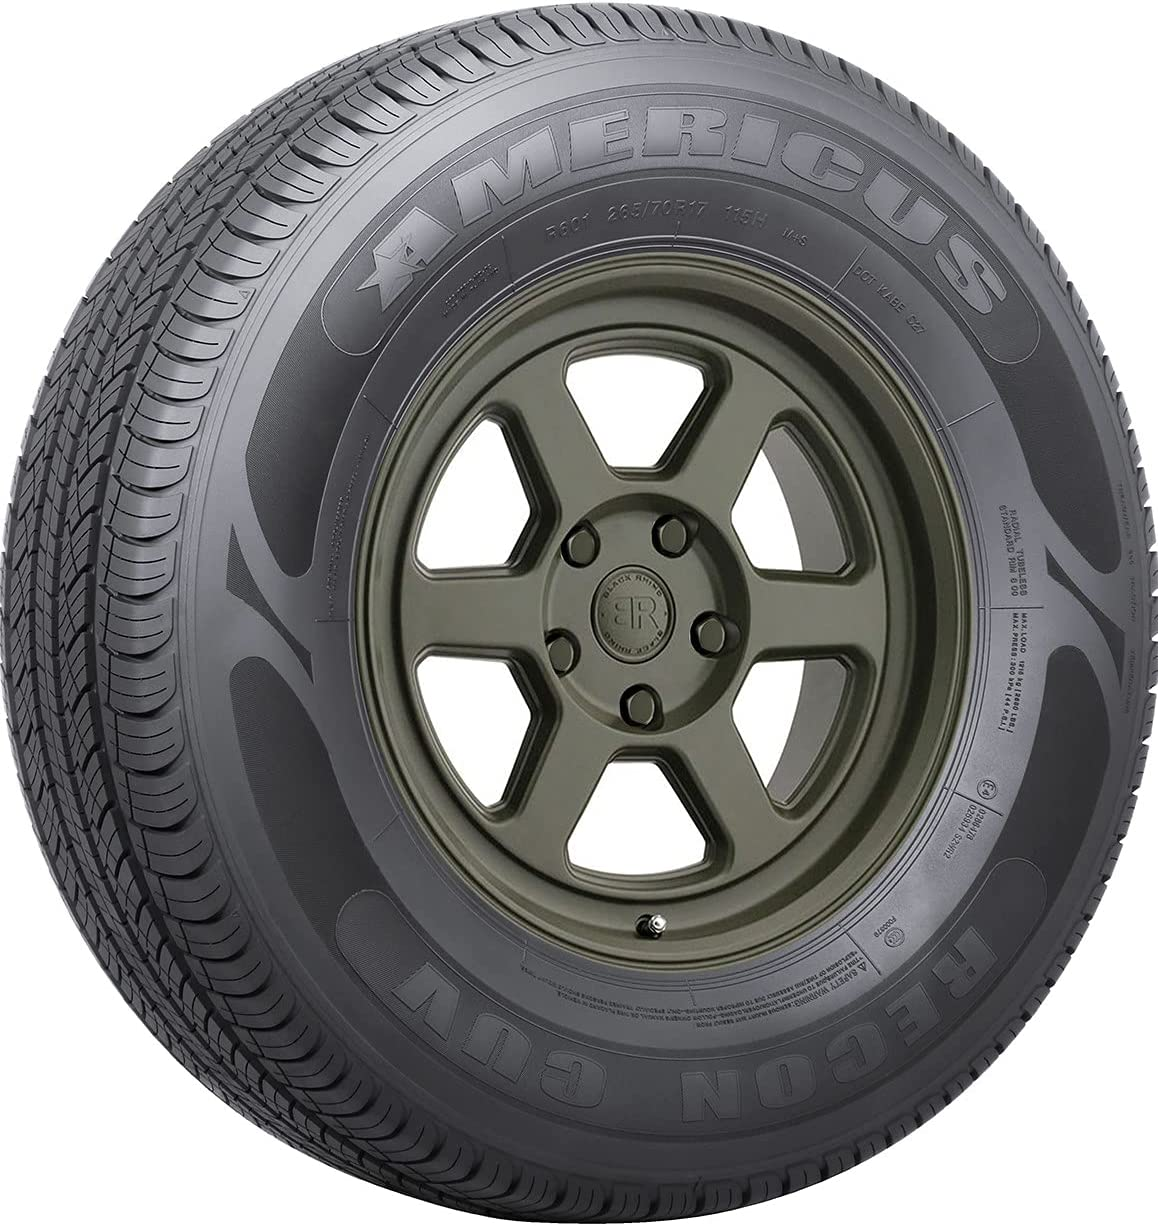 Americus r601 P245 65R17 all-season Dealing full price OFFicial reduction tire 111H bsw